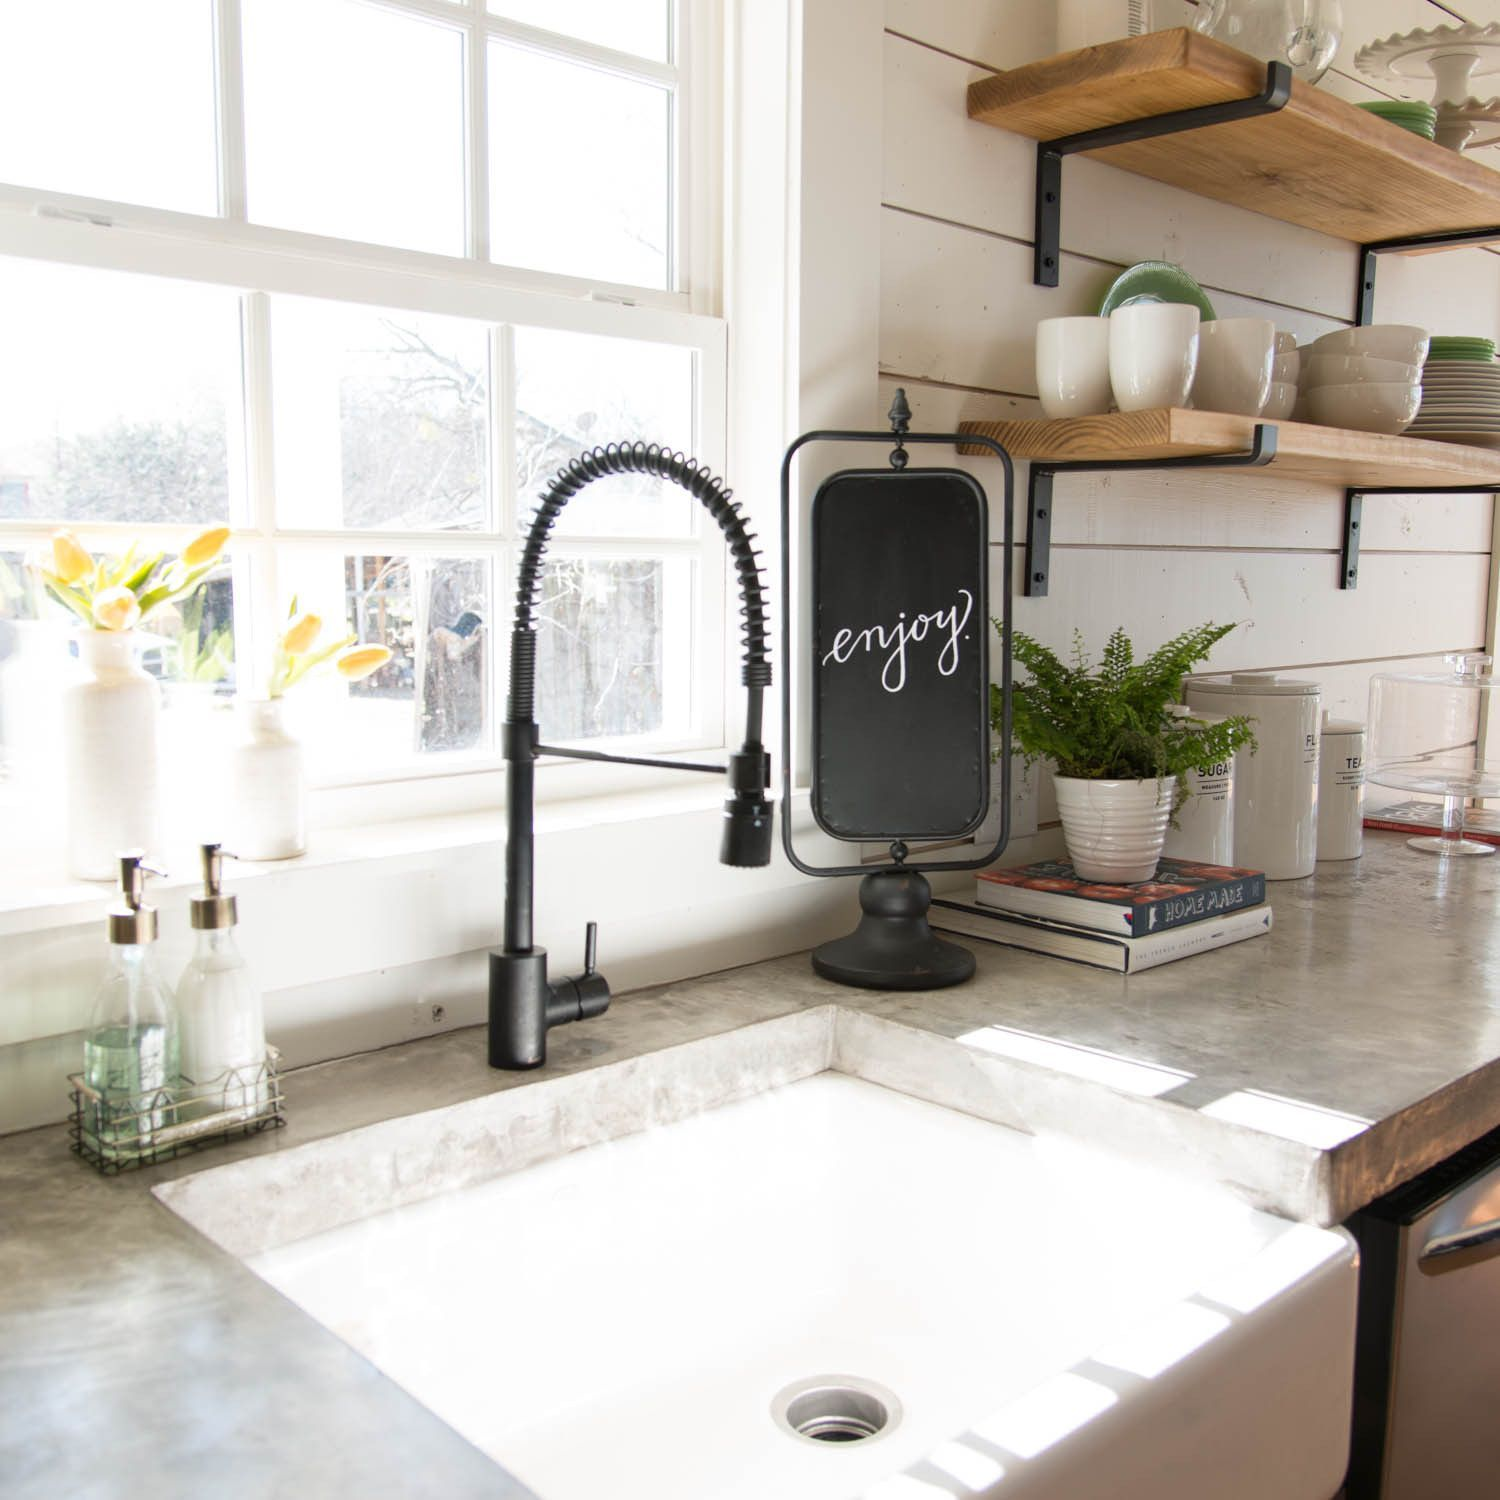 Fixer upper kitchen soap dispenser - Used In All Seasons Of Fixer Upper Our Spinning Blackboard Is A Cute Way To Welcome Guests Into Your House Or Have An Inspirational Quote Up